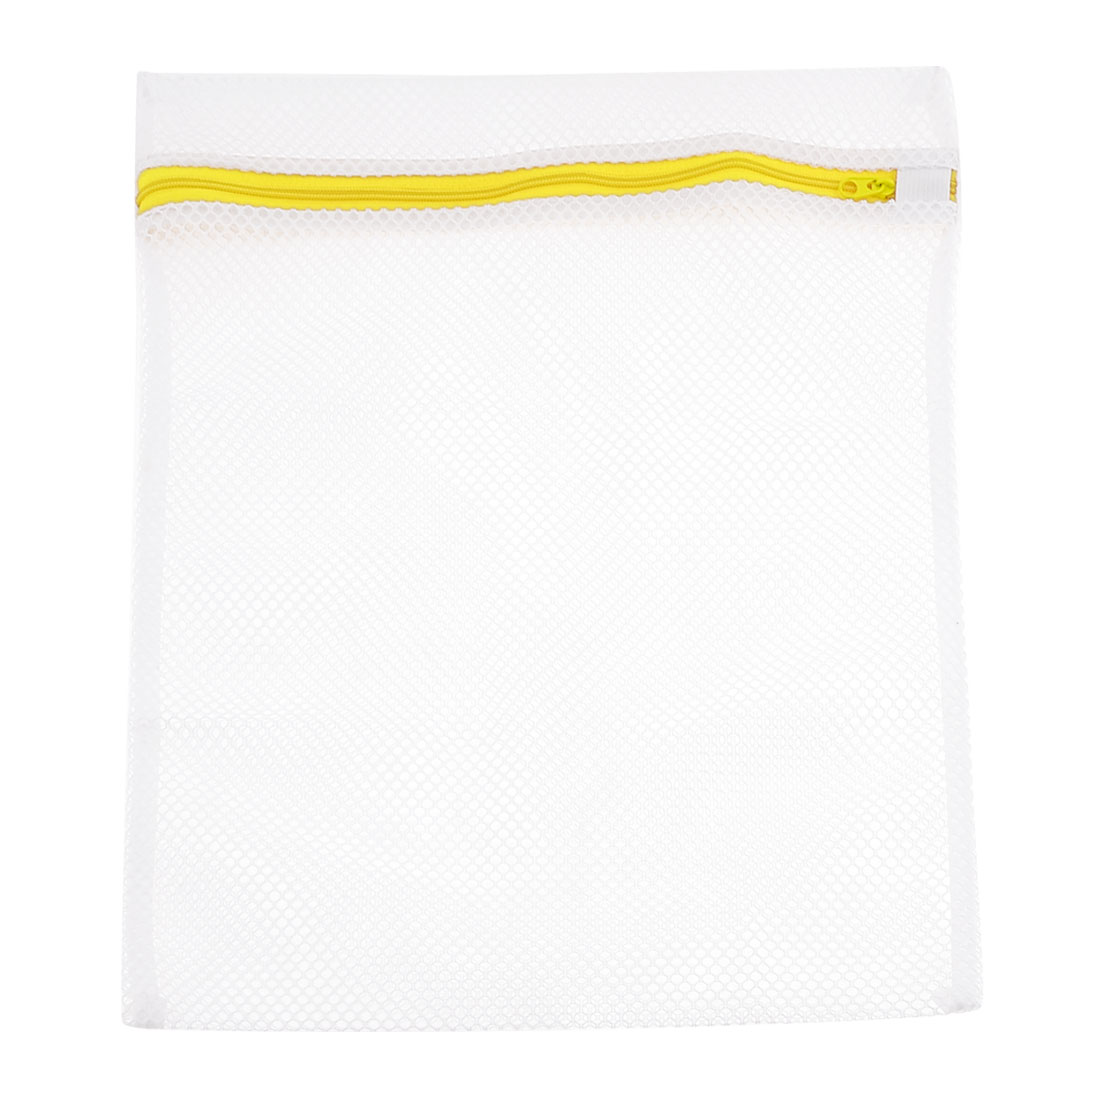 Laundry White Yellow Nylon Mesh Underwear Clothes Washing Bag 38.5cm x 27.5cm